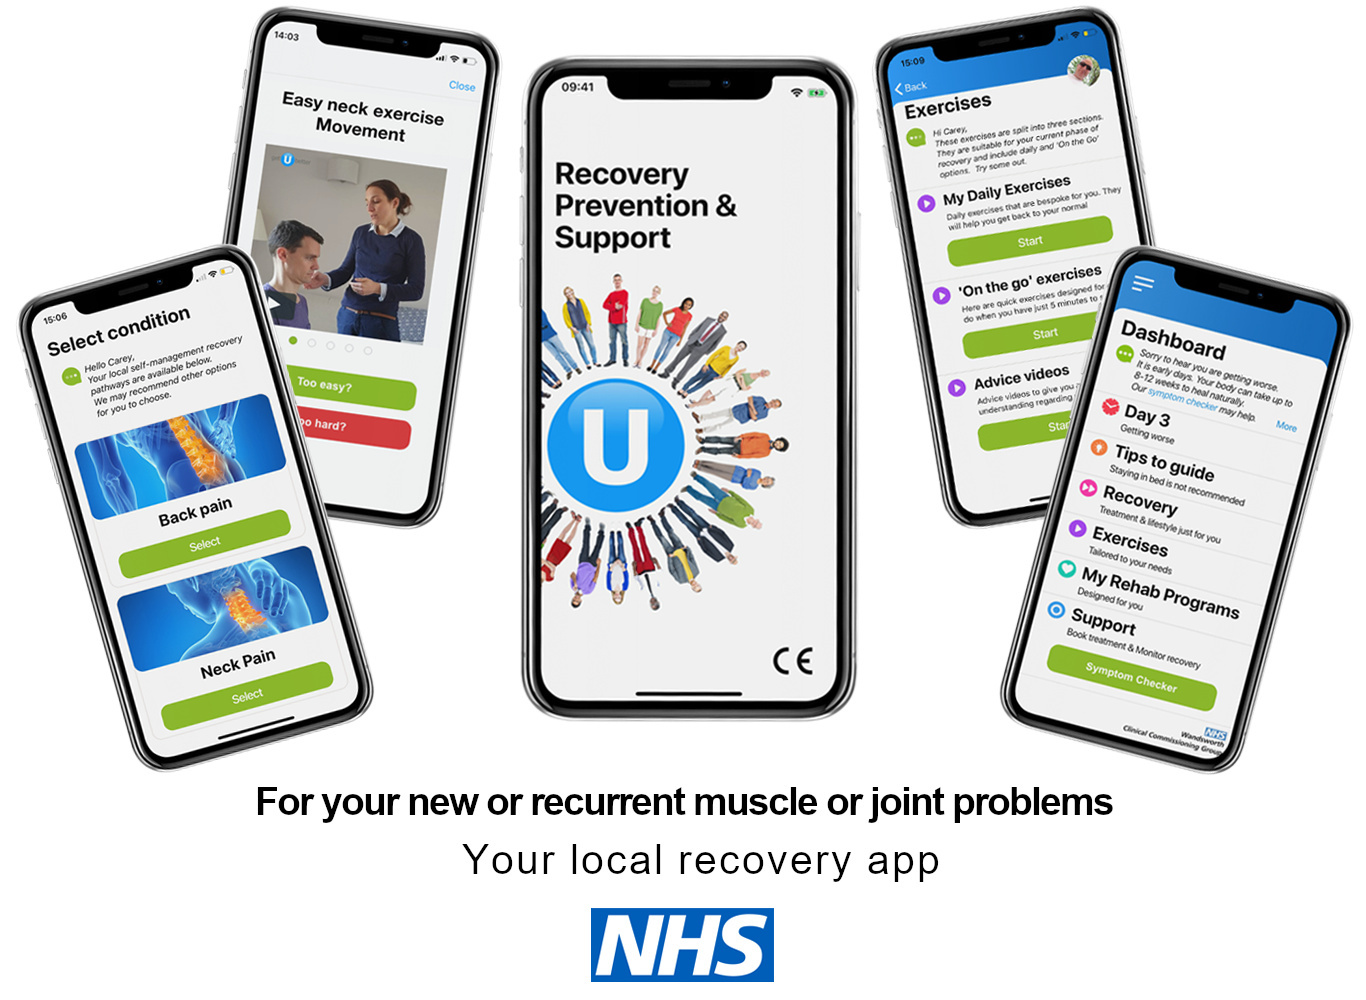 For your new or recurrent muscle or joint problems. Your local recovery app